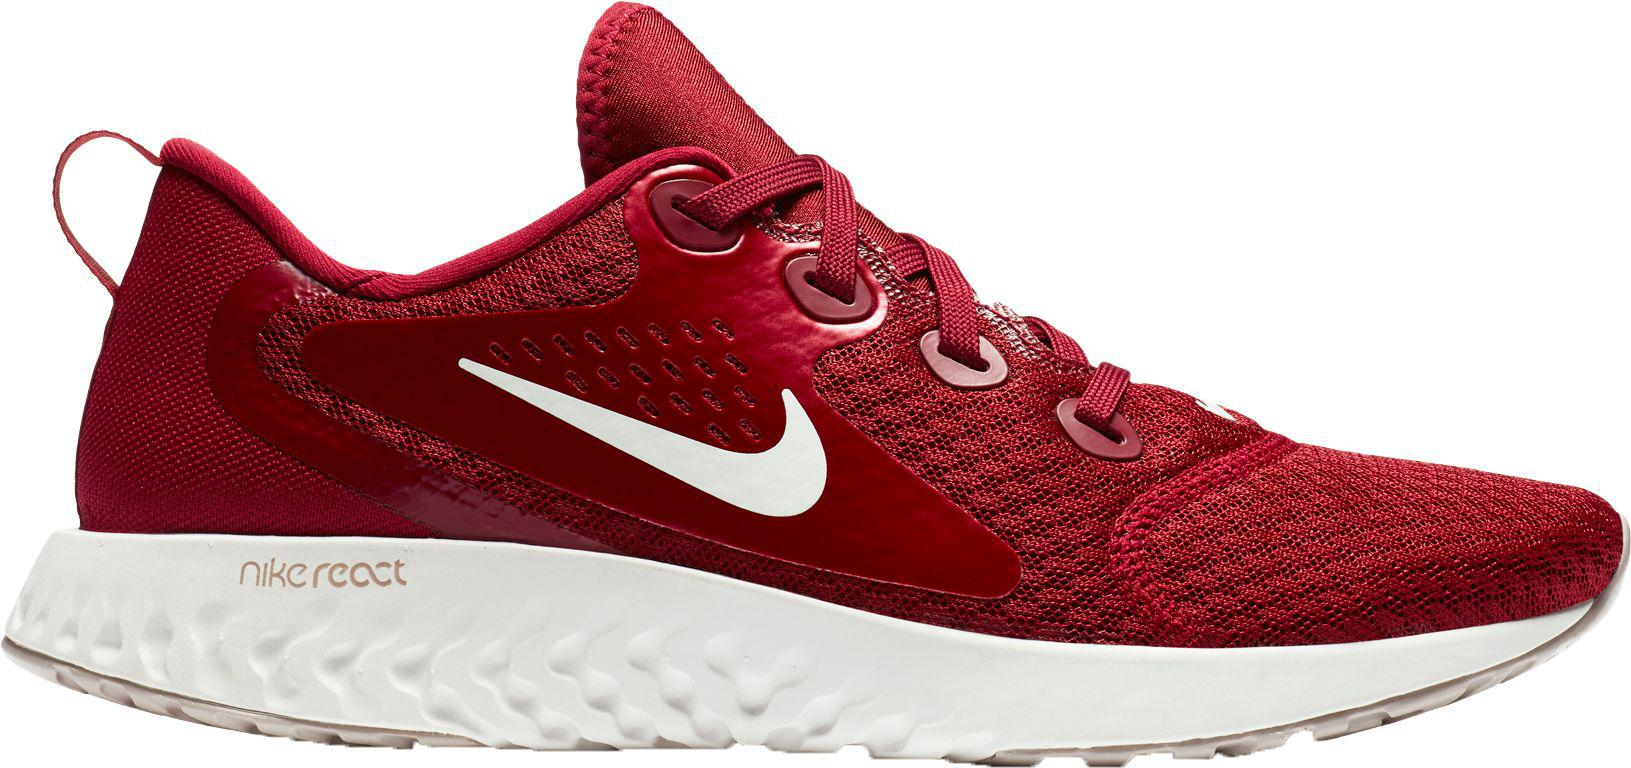 1a9bbcfea6a0 Lyst - Nike Legend React Running Shoes in Red